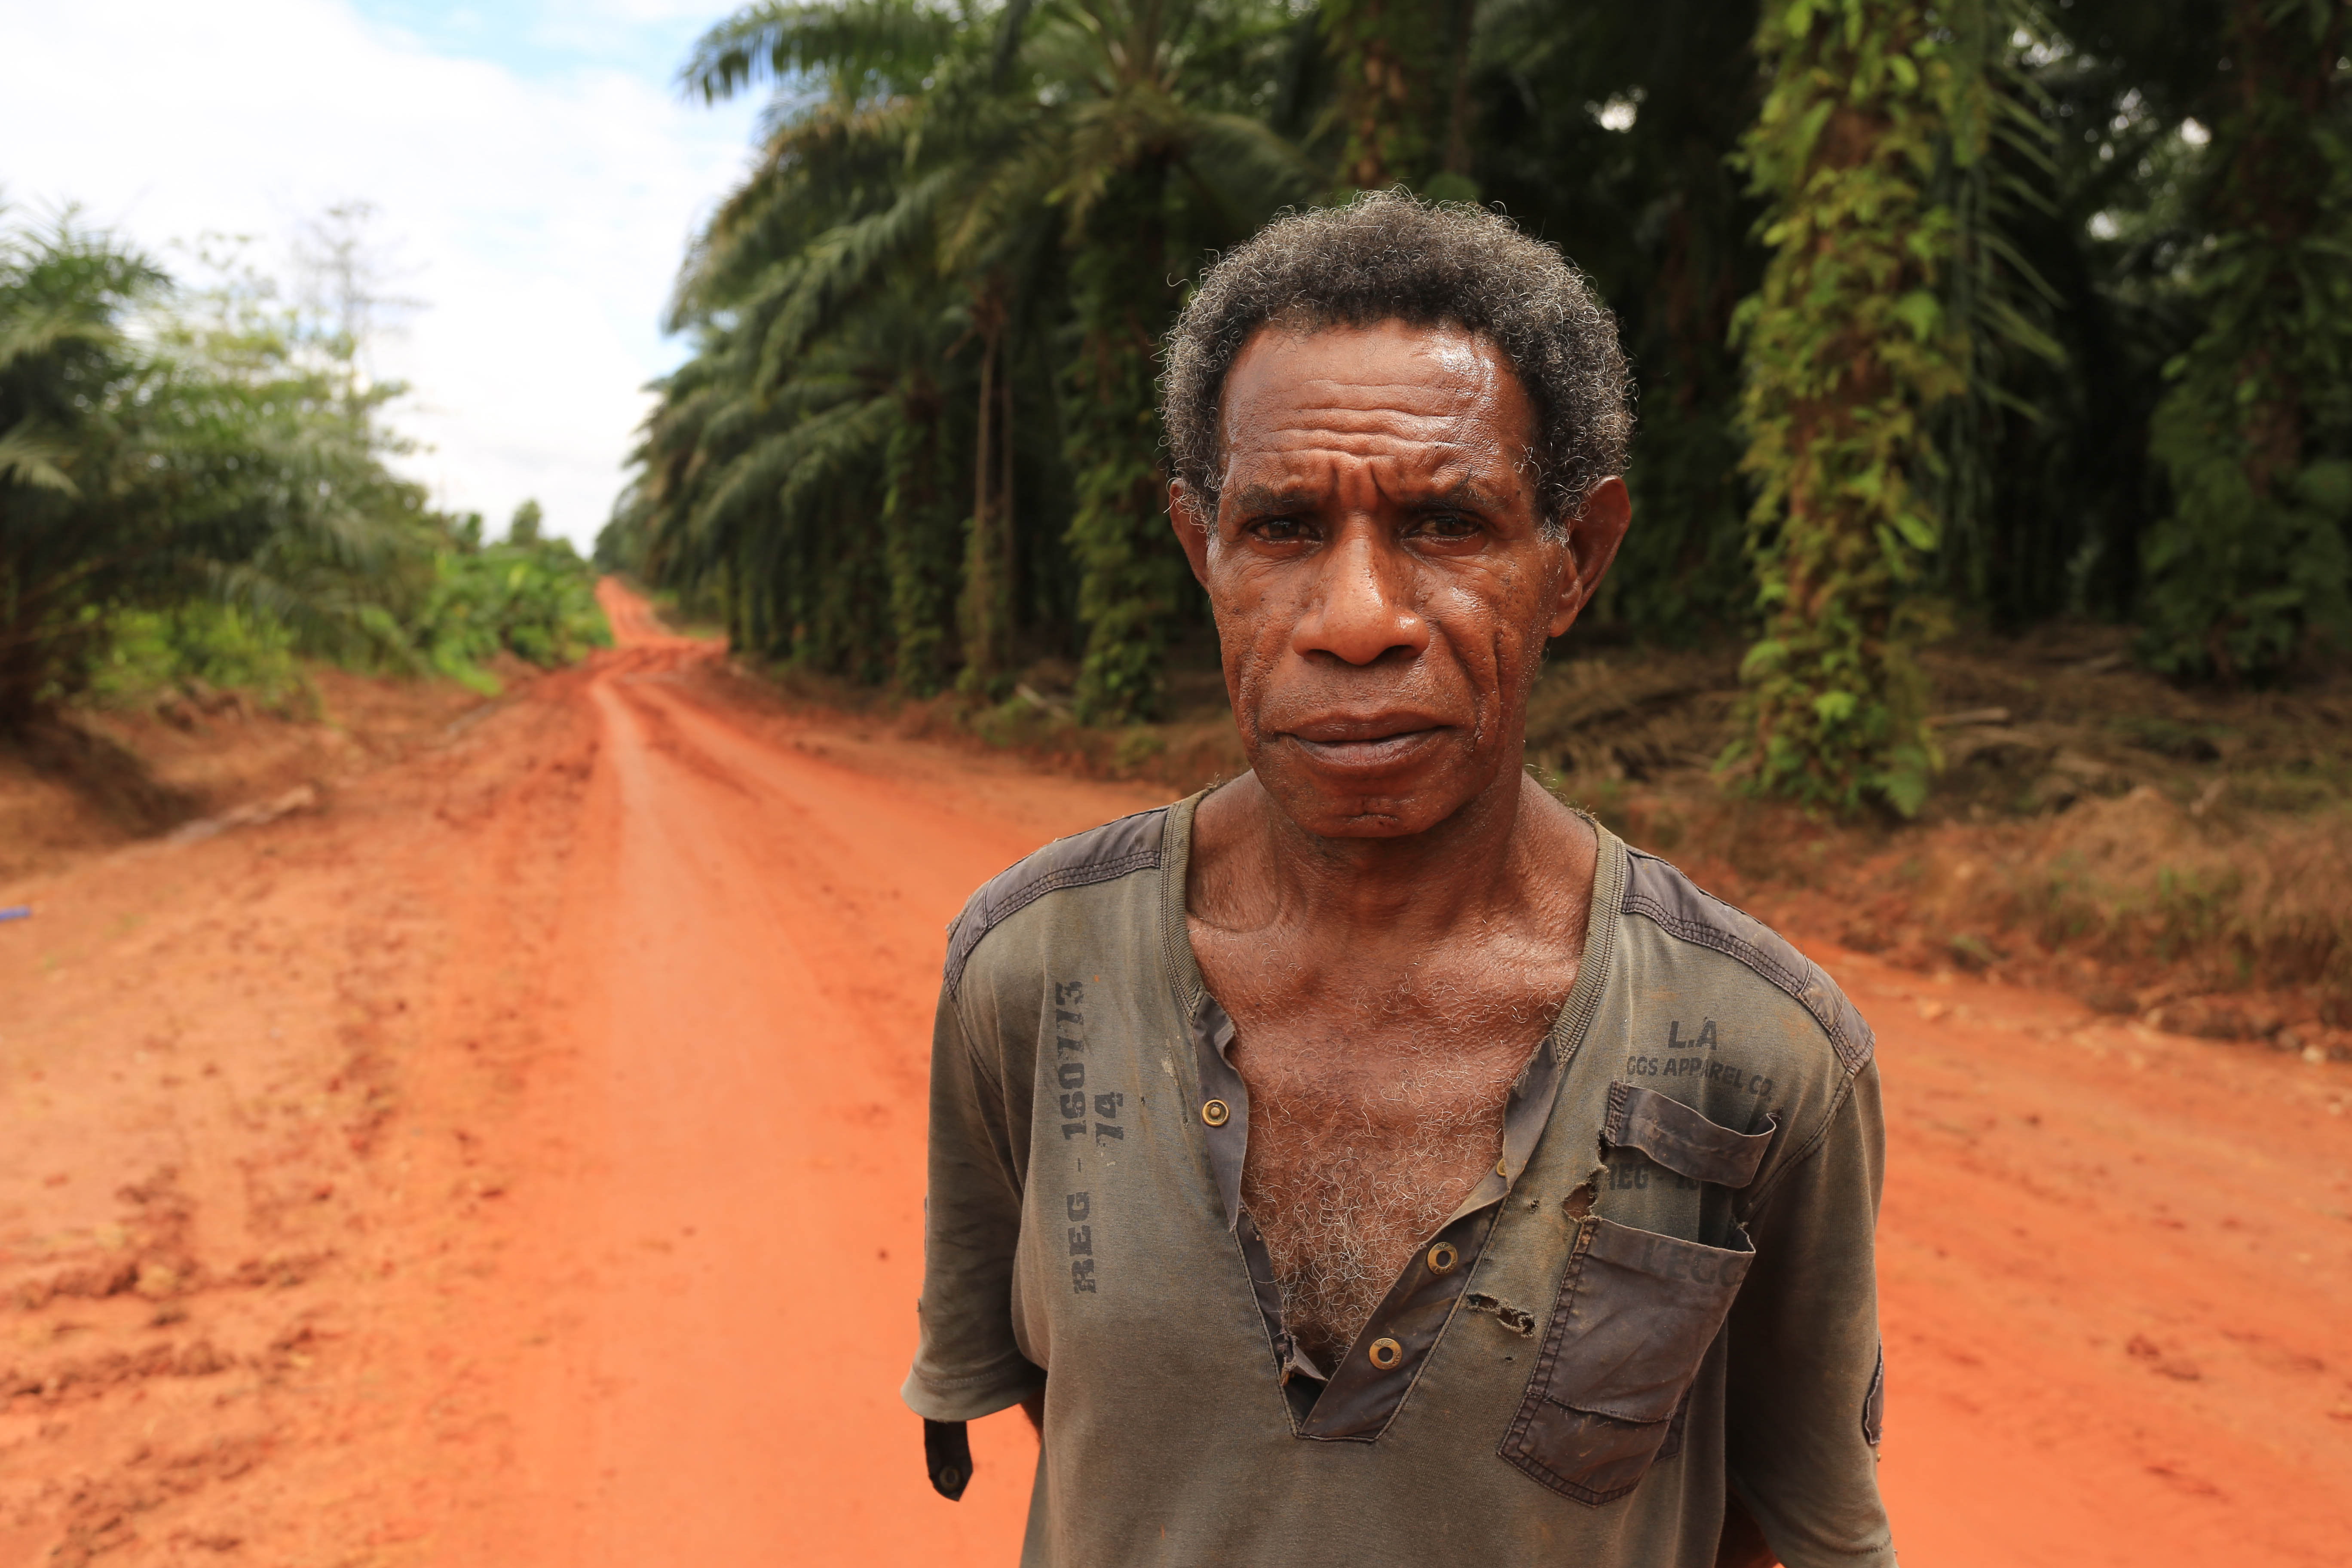 A file photo of an indigenous man, who is part of a community occupying the forest land on the edge of Korindo's PT Tunas Sawa Erma plantation in Papua, Indonesia. (Mighty)